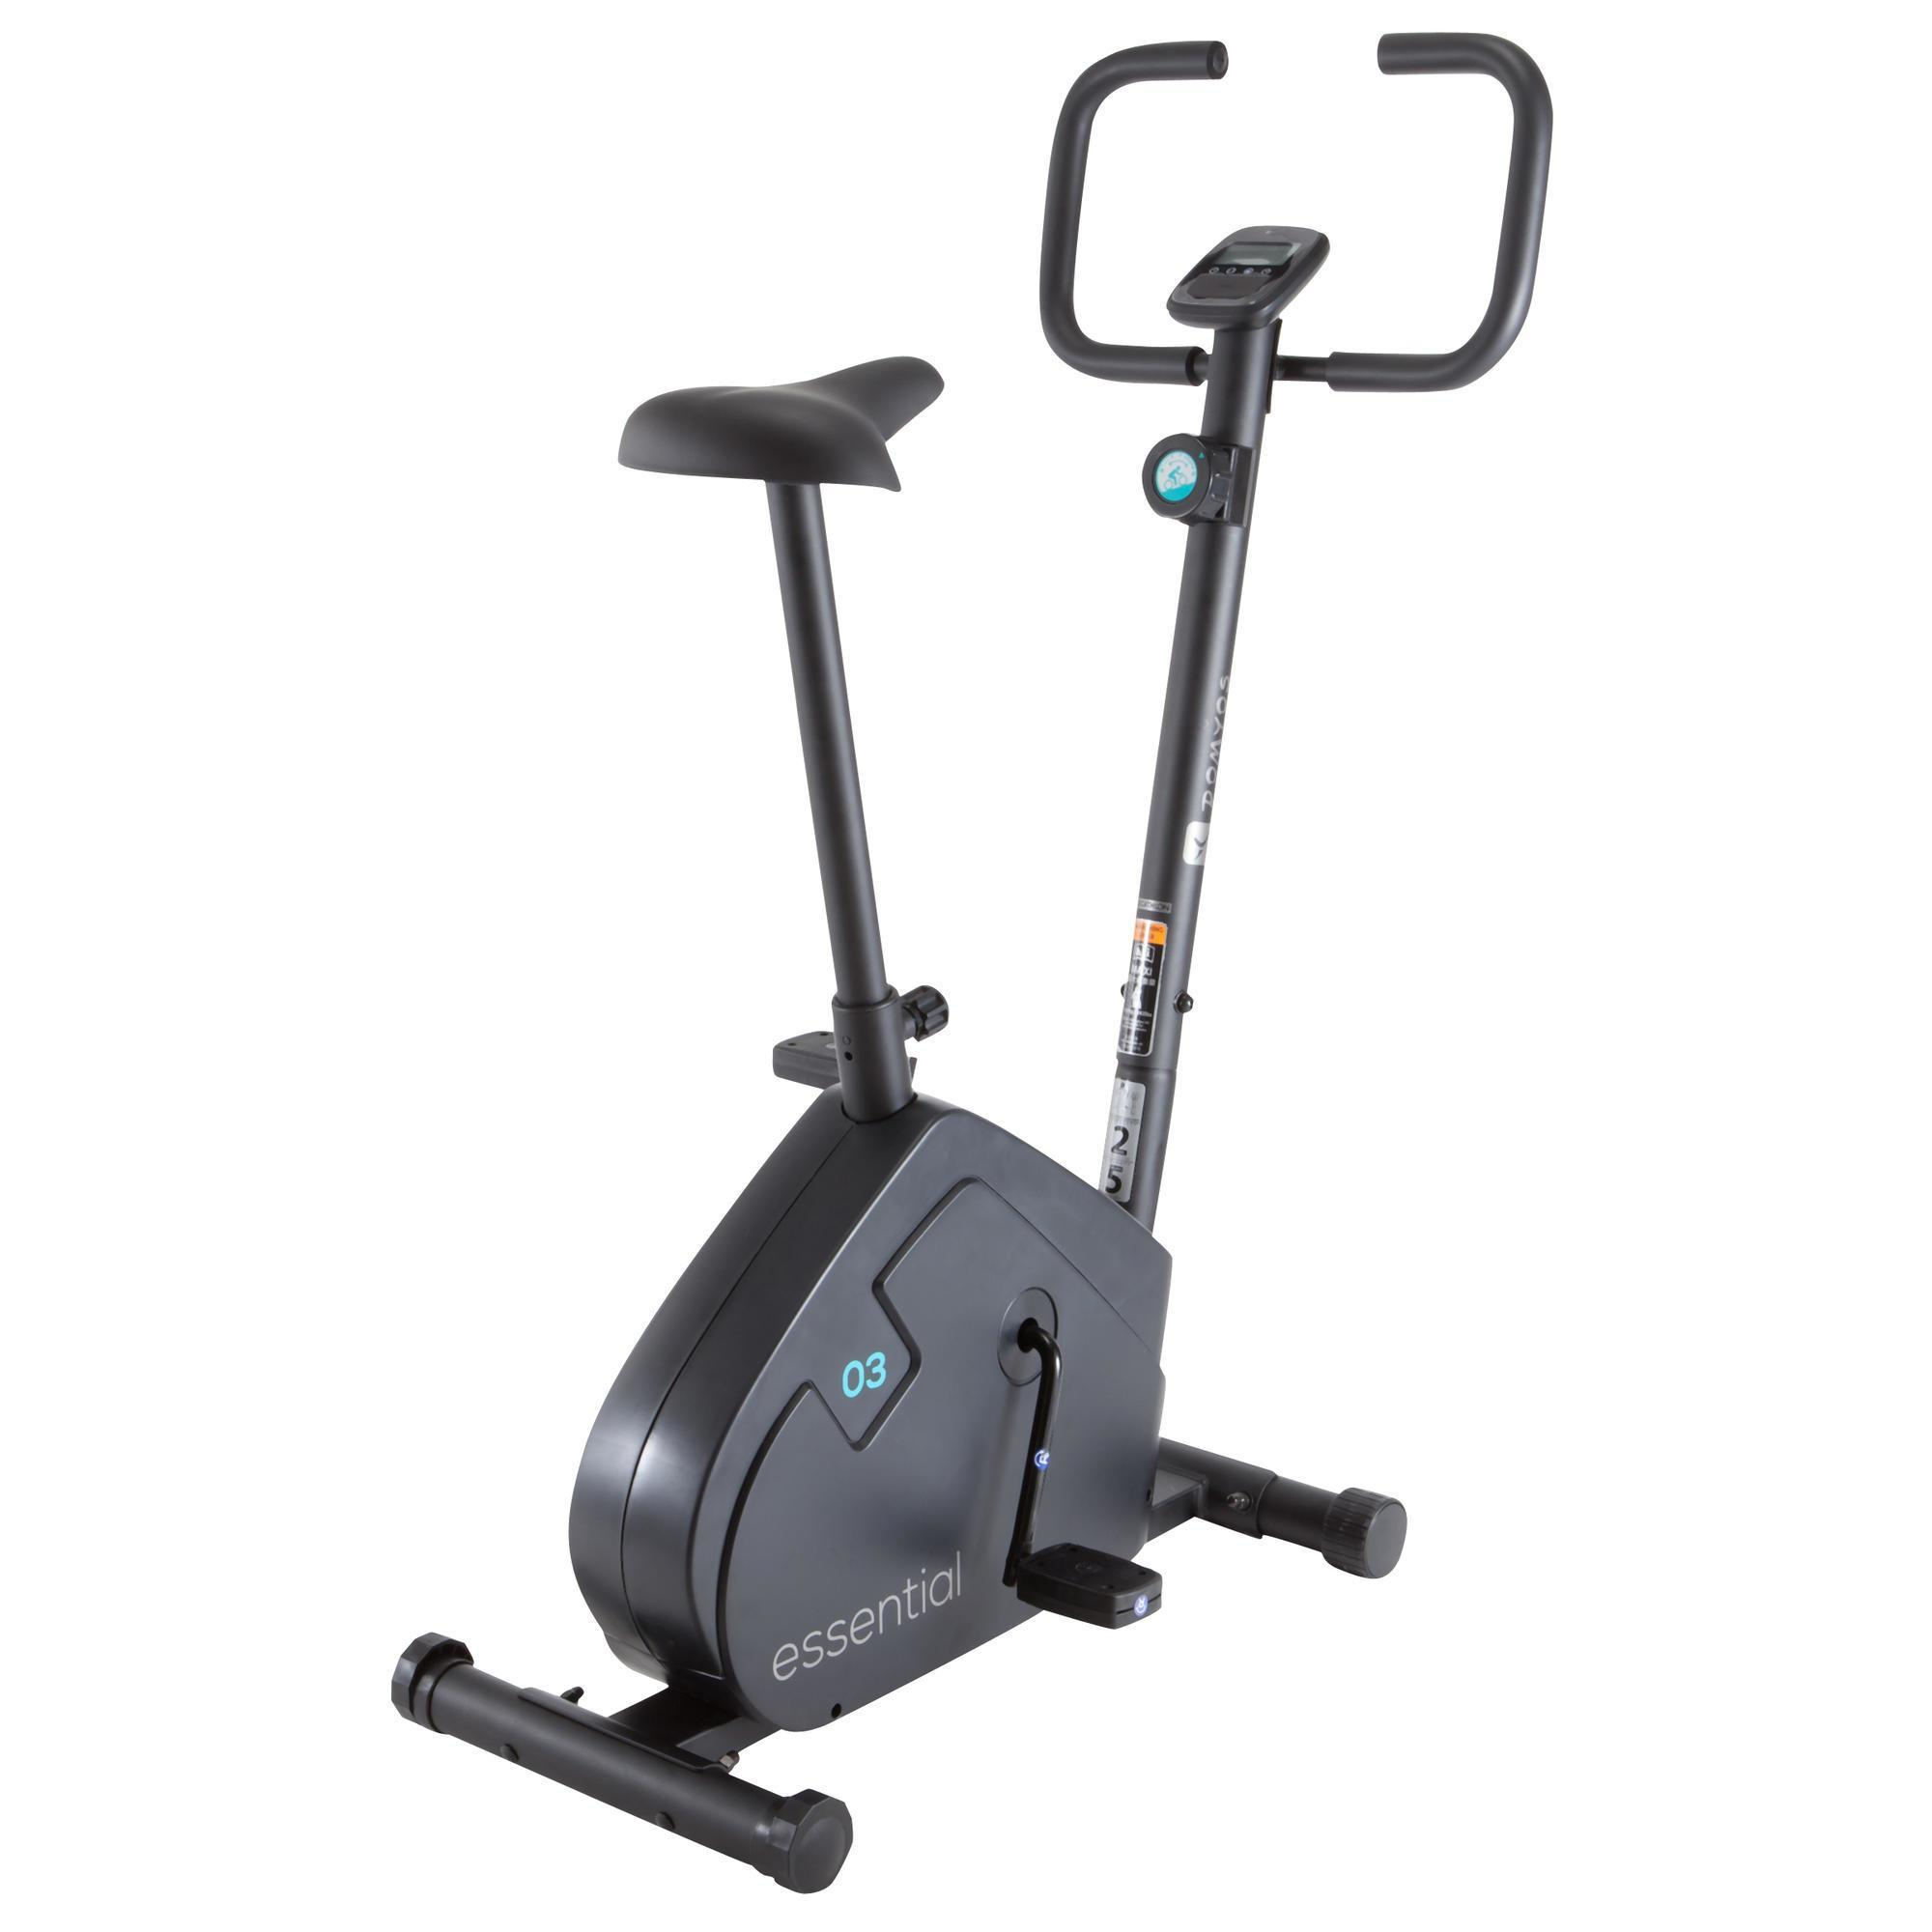 essential exercise bike domyos by decathlon